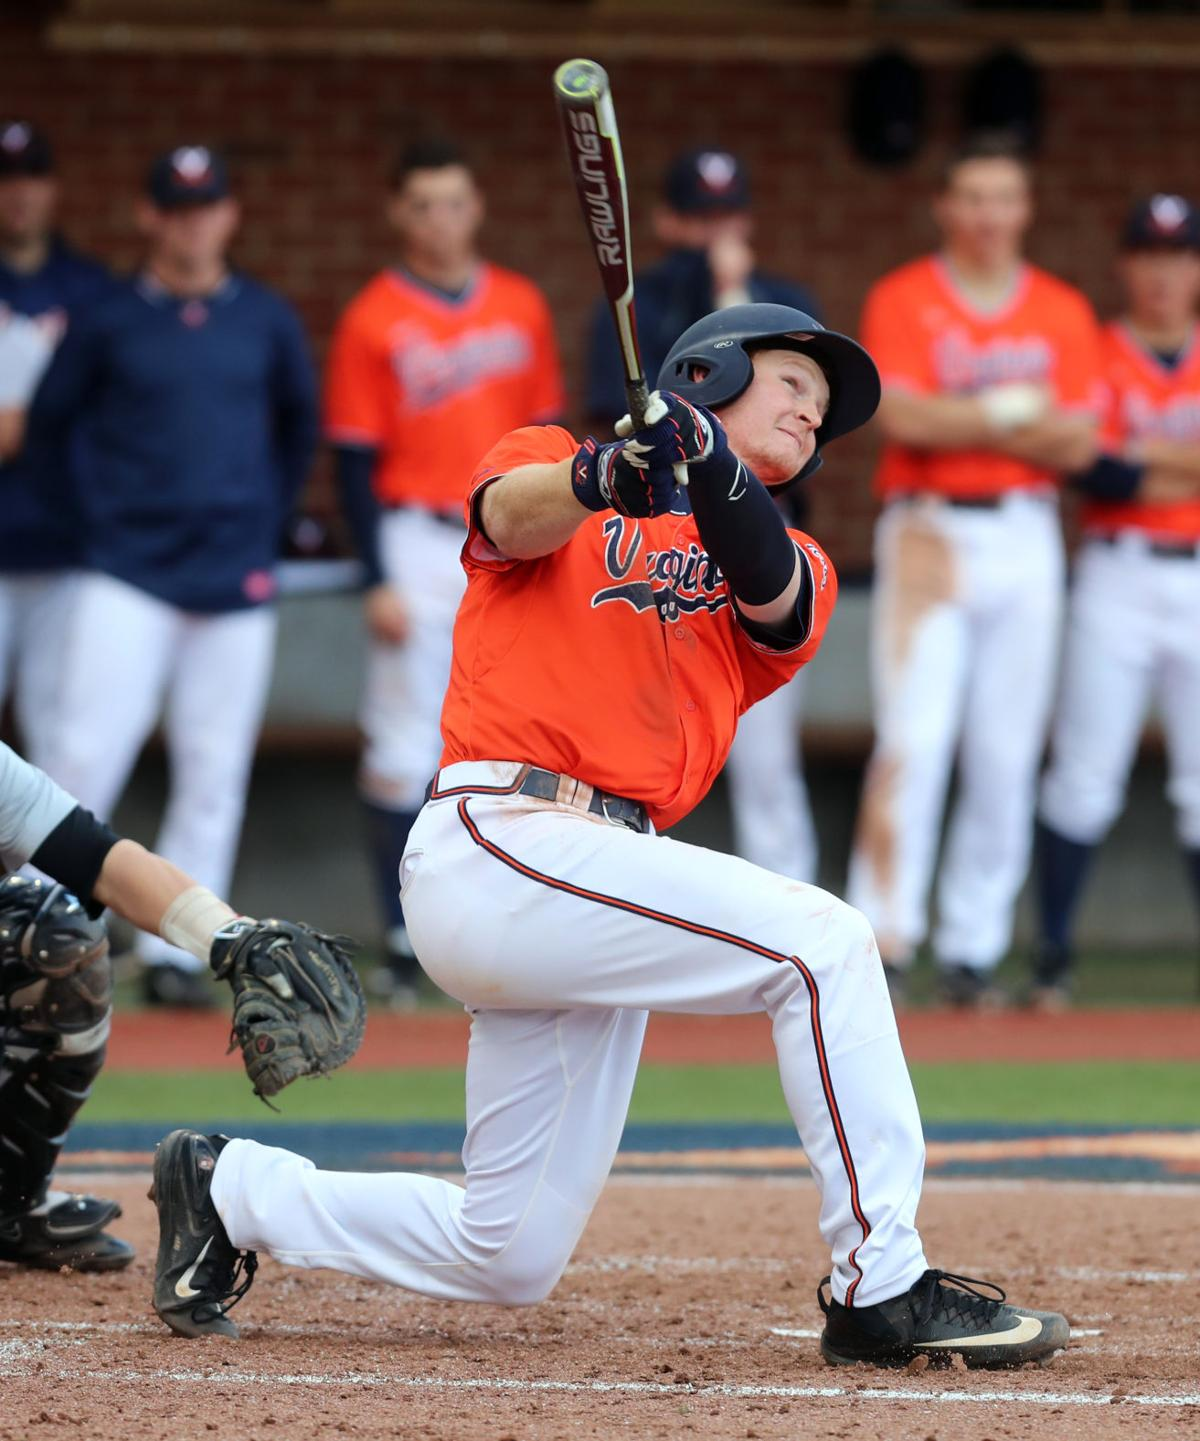 UVa Continues Hot Hitting Start In Rout Of Rutgers